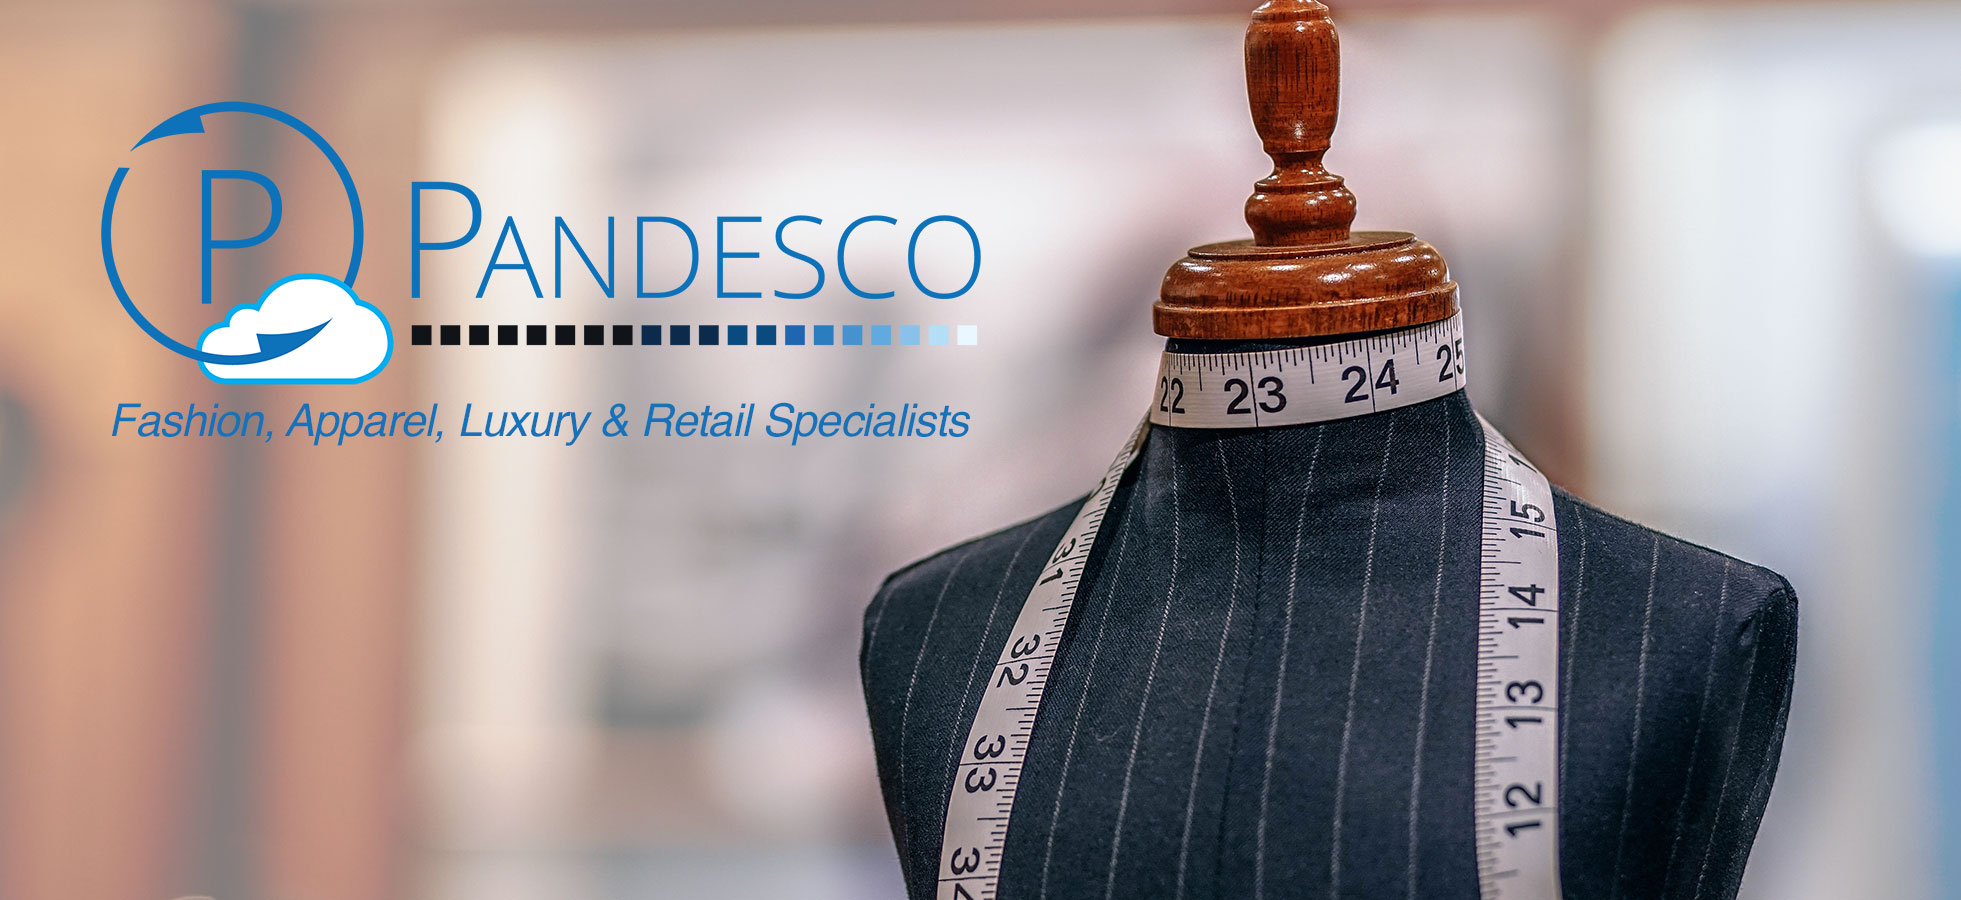 b0a261cd Home - PANDESCO: Fashion, Apparel, Luxury and Retail Specialists